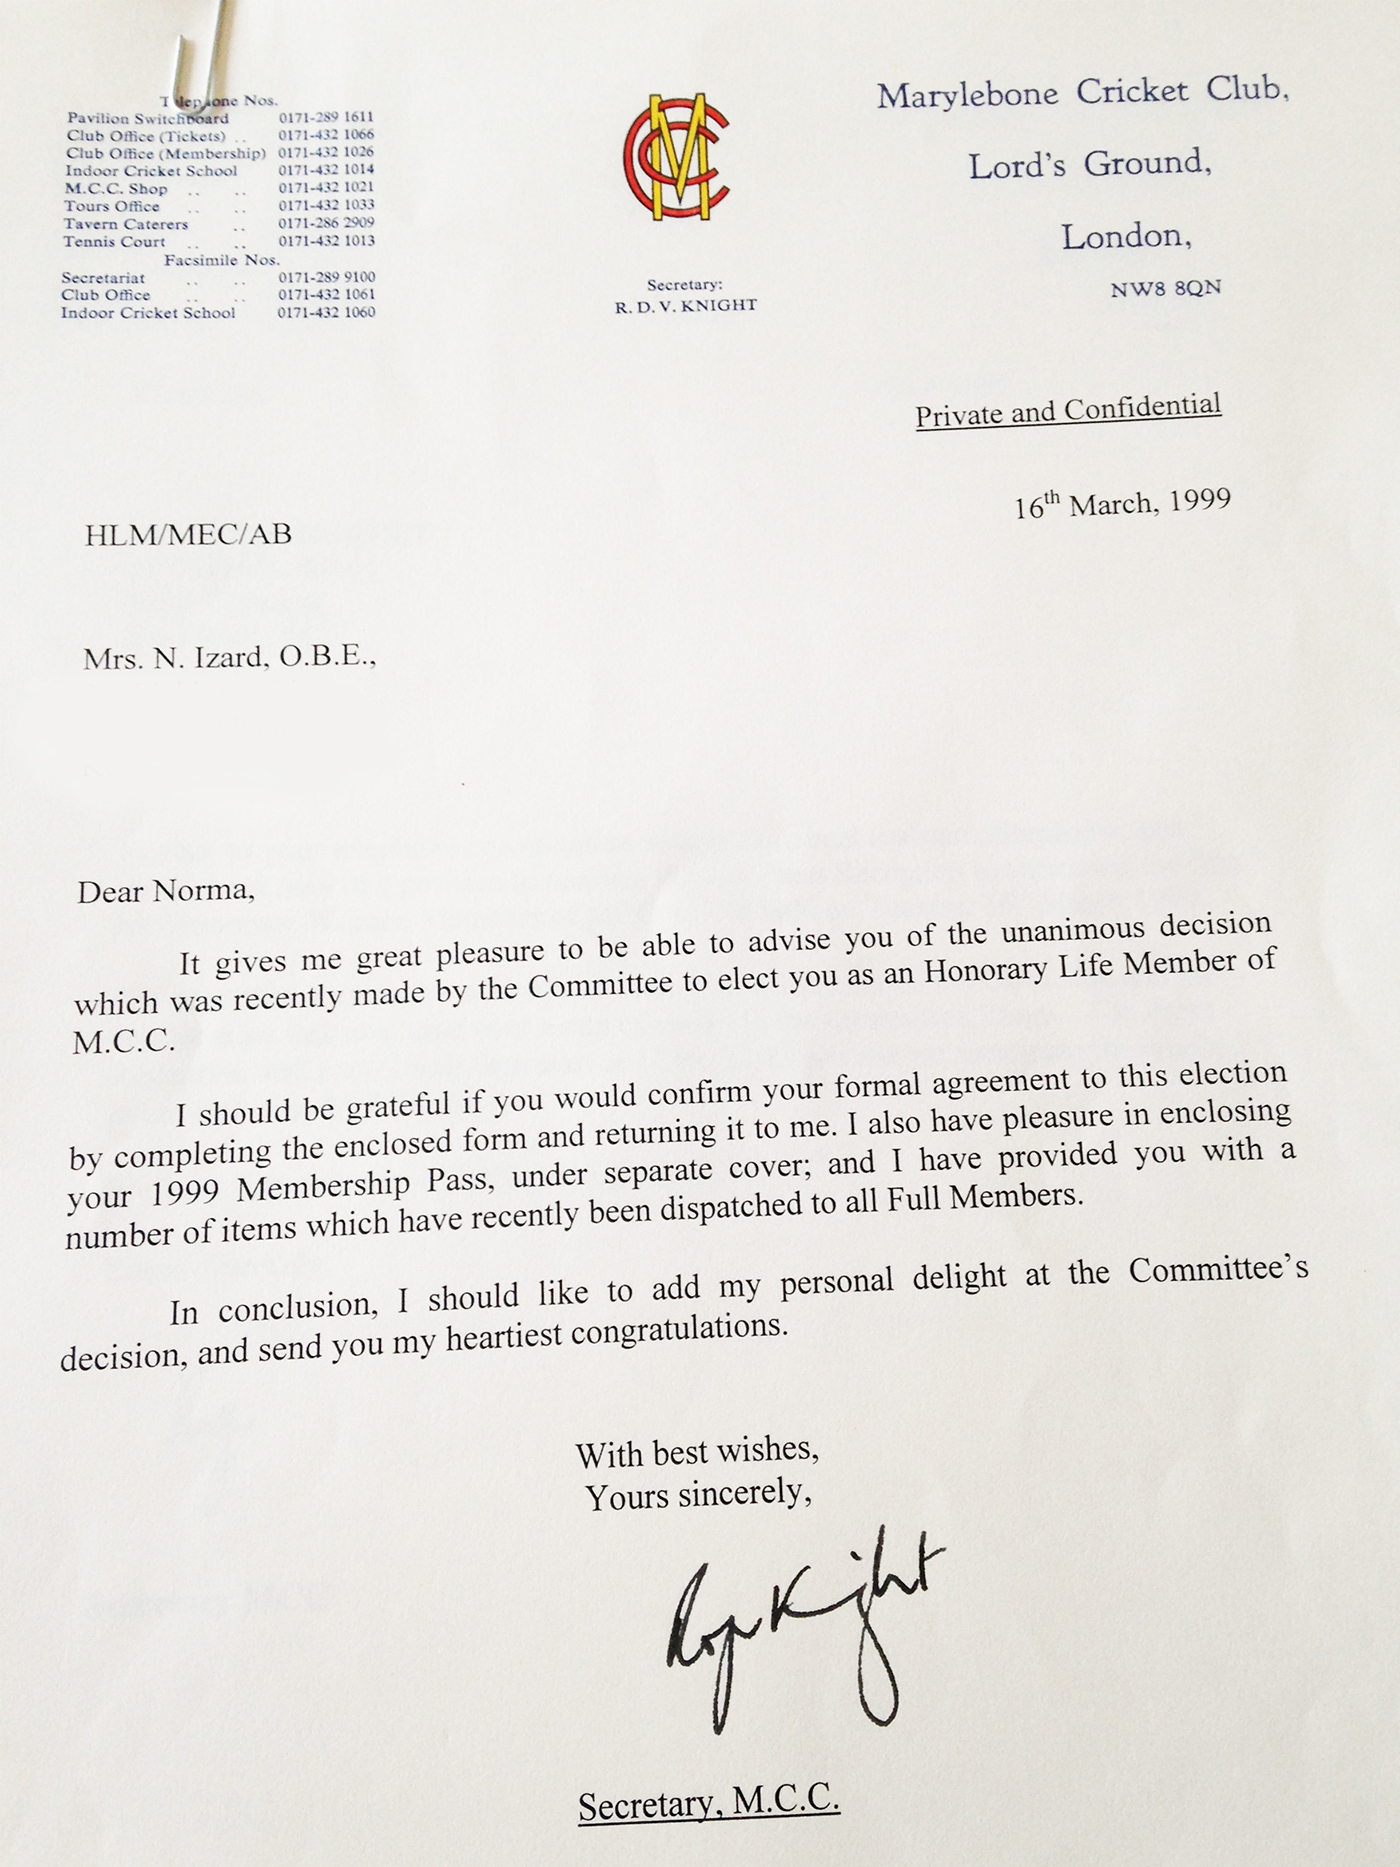 The MCC's letter to Norma Izard informing her she had been granted membership